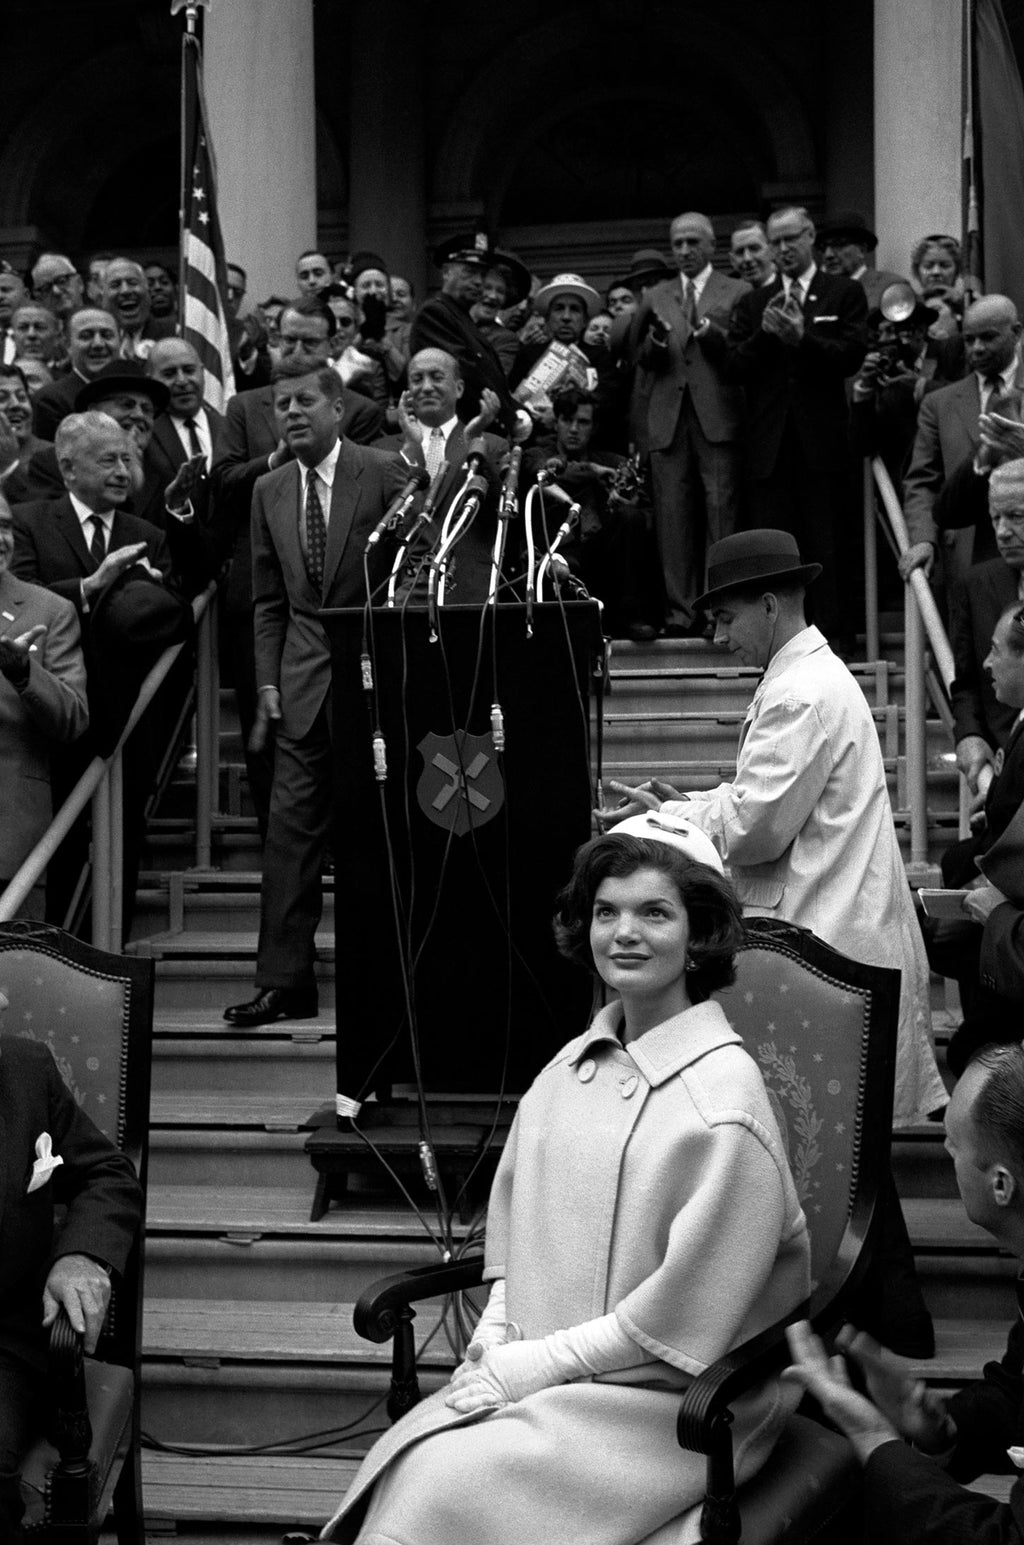 Jacqueline Kennedy on the presidentail campaign with Senator John F. Kennedy. New York City, USA. 1960.